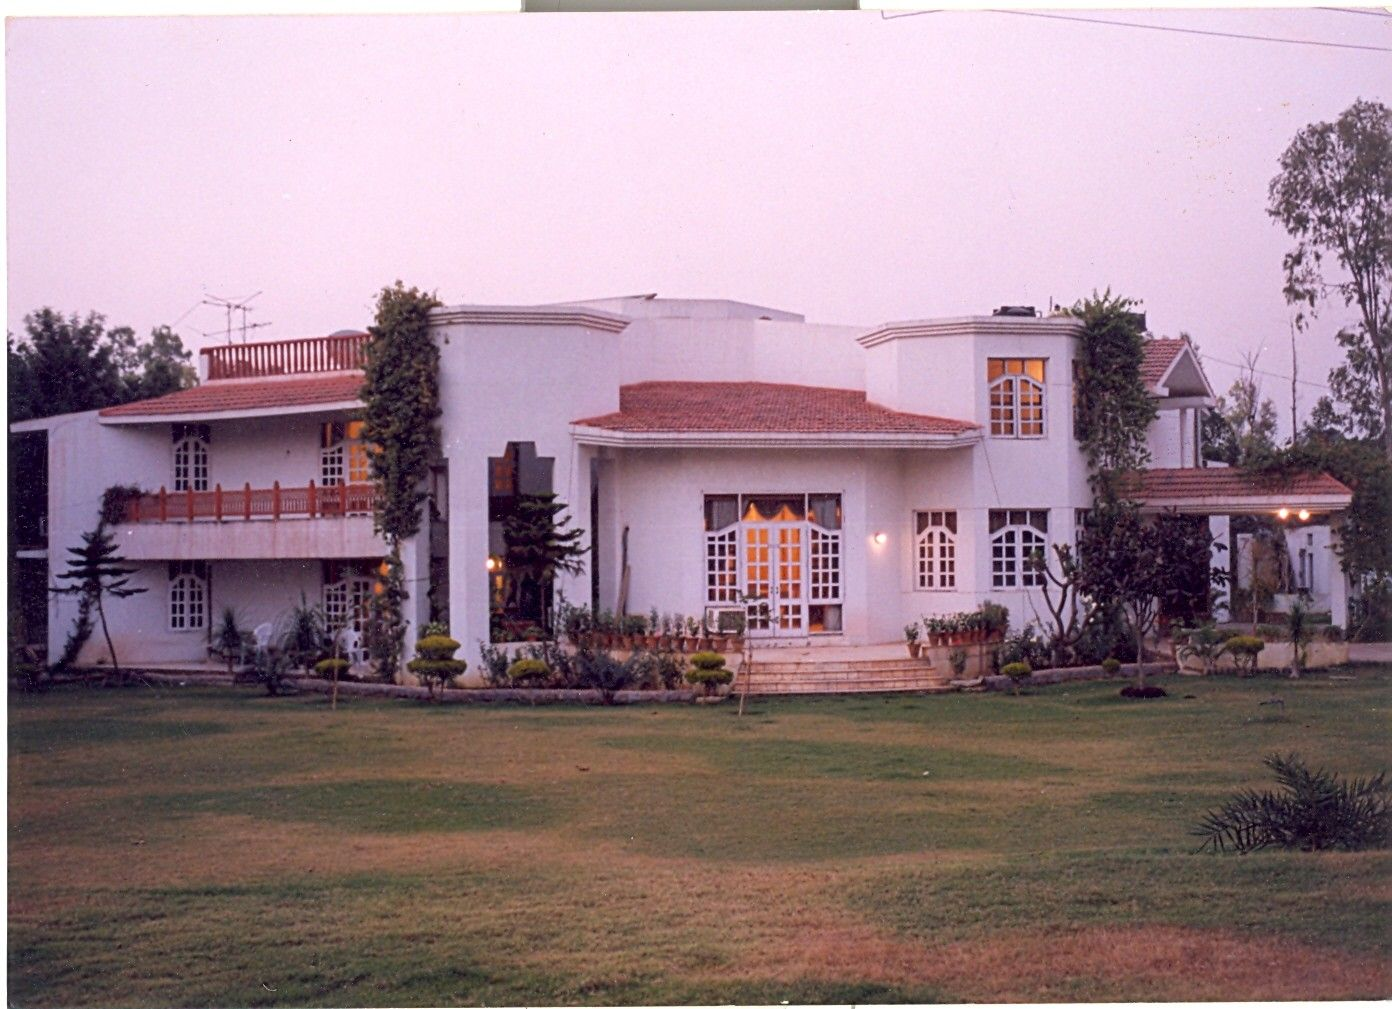 The Jain Farmhouse, Manglapuri, Delhi